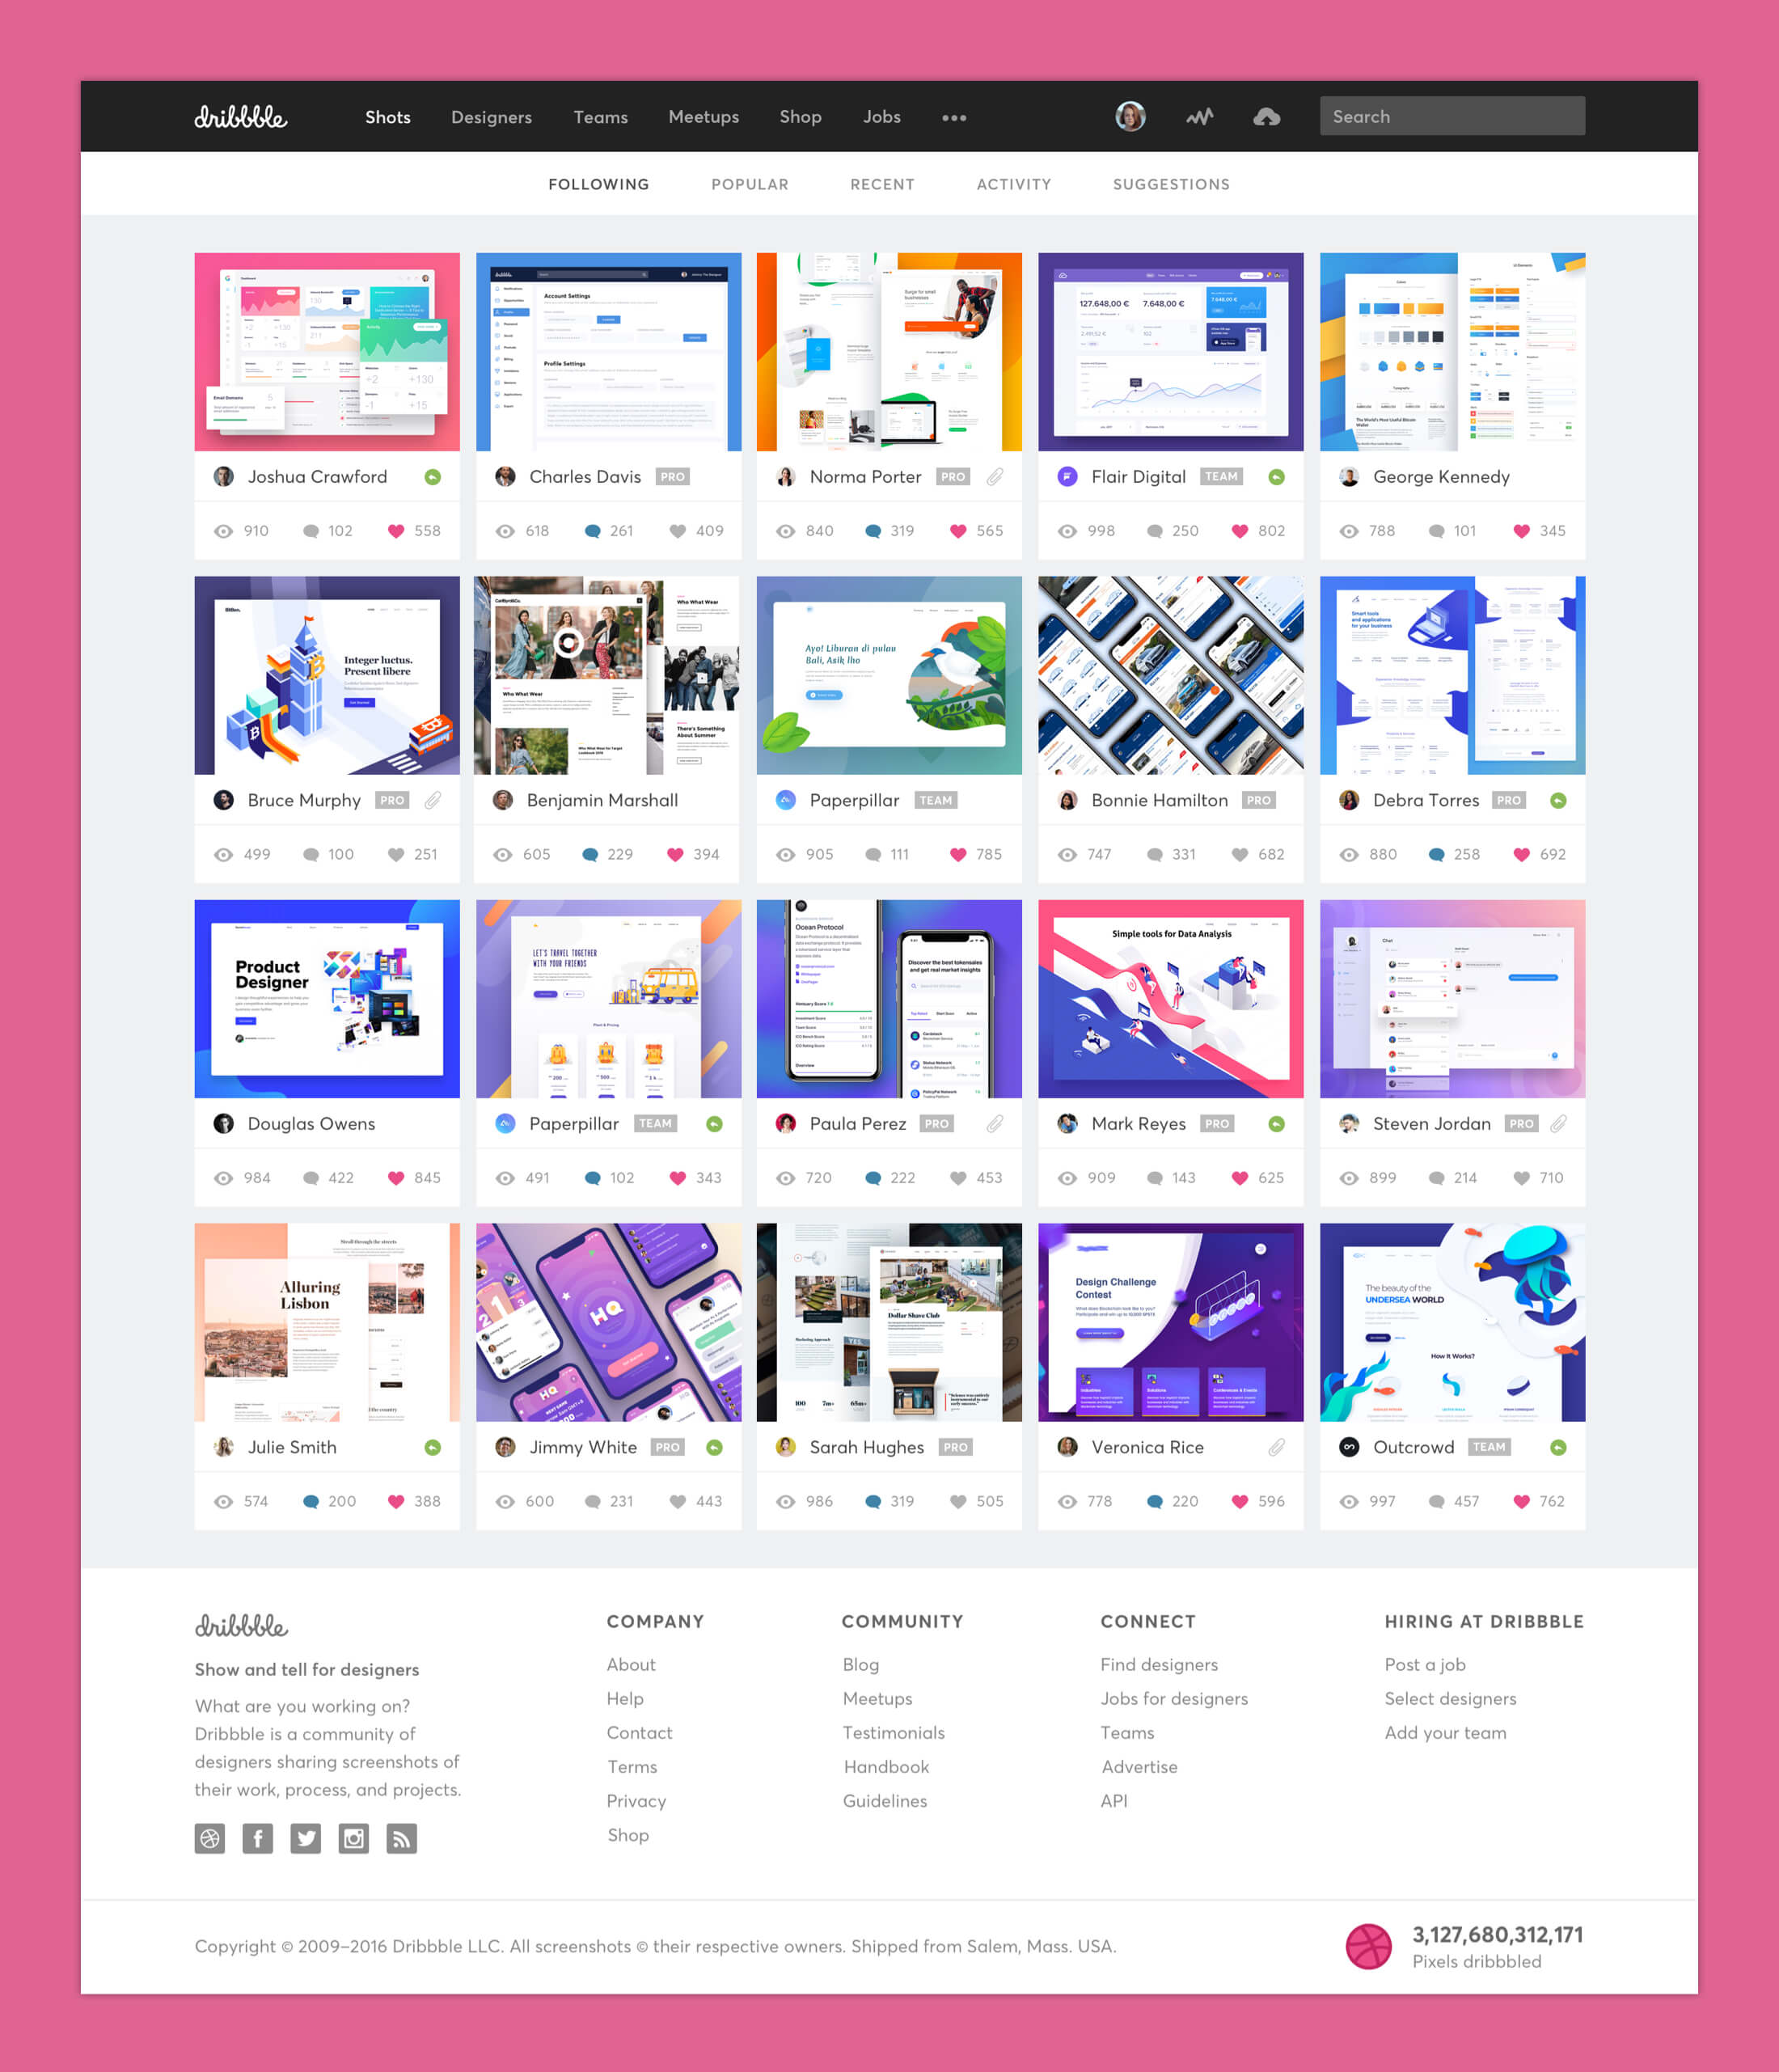 Dribbble Redesign - Shots Page